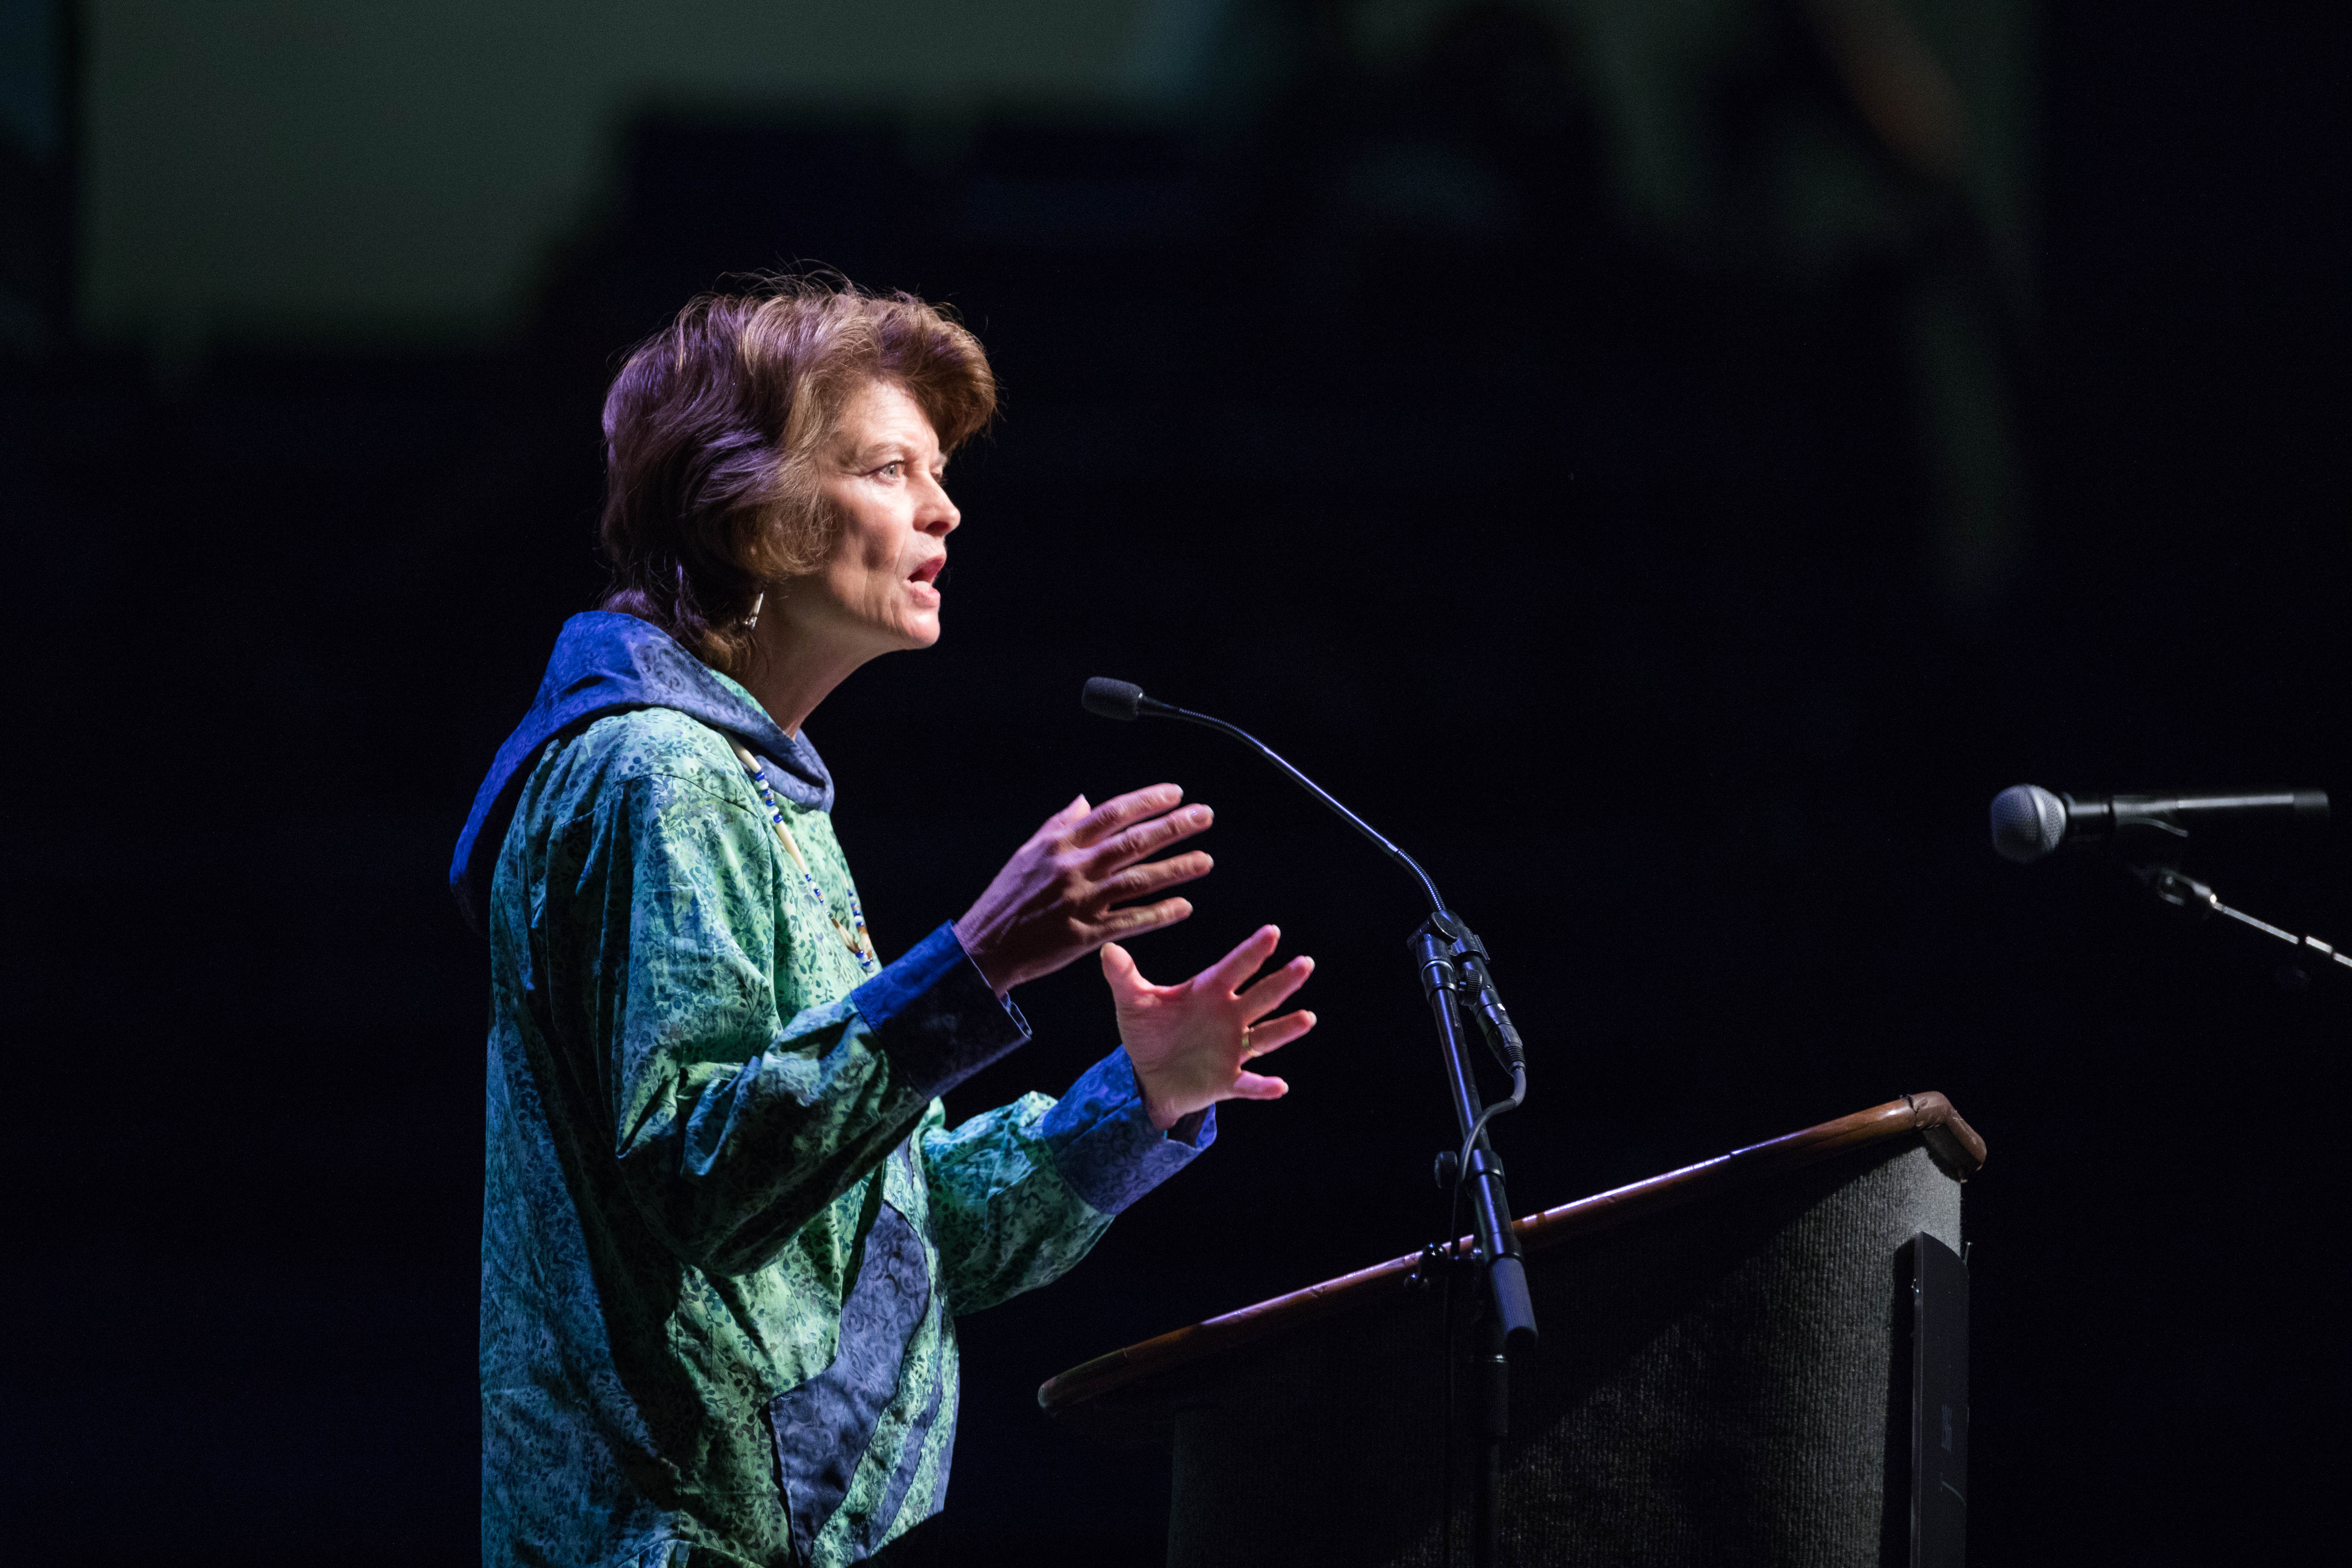 Senator Lisa Murkowski addresses delegates at the Alaska Federation of Natives convention at the Carlson Center in Fairbanks on Friday, Oct. 21, 2016. (Loren Holmes / Alaska Dispatch News)